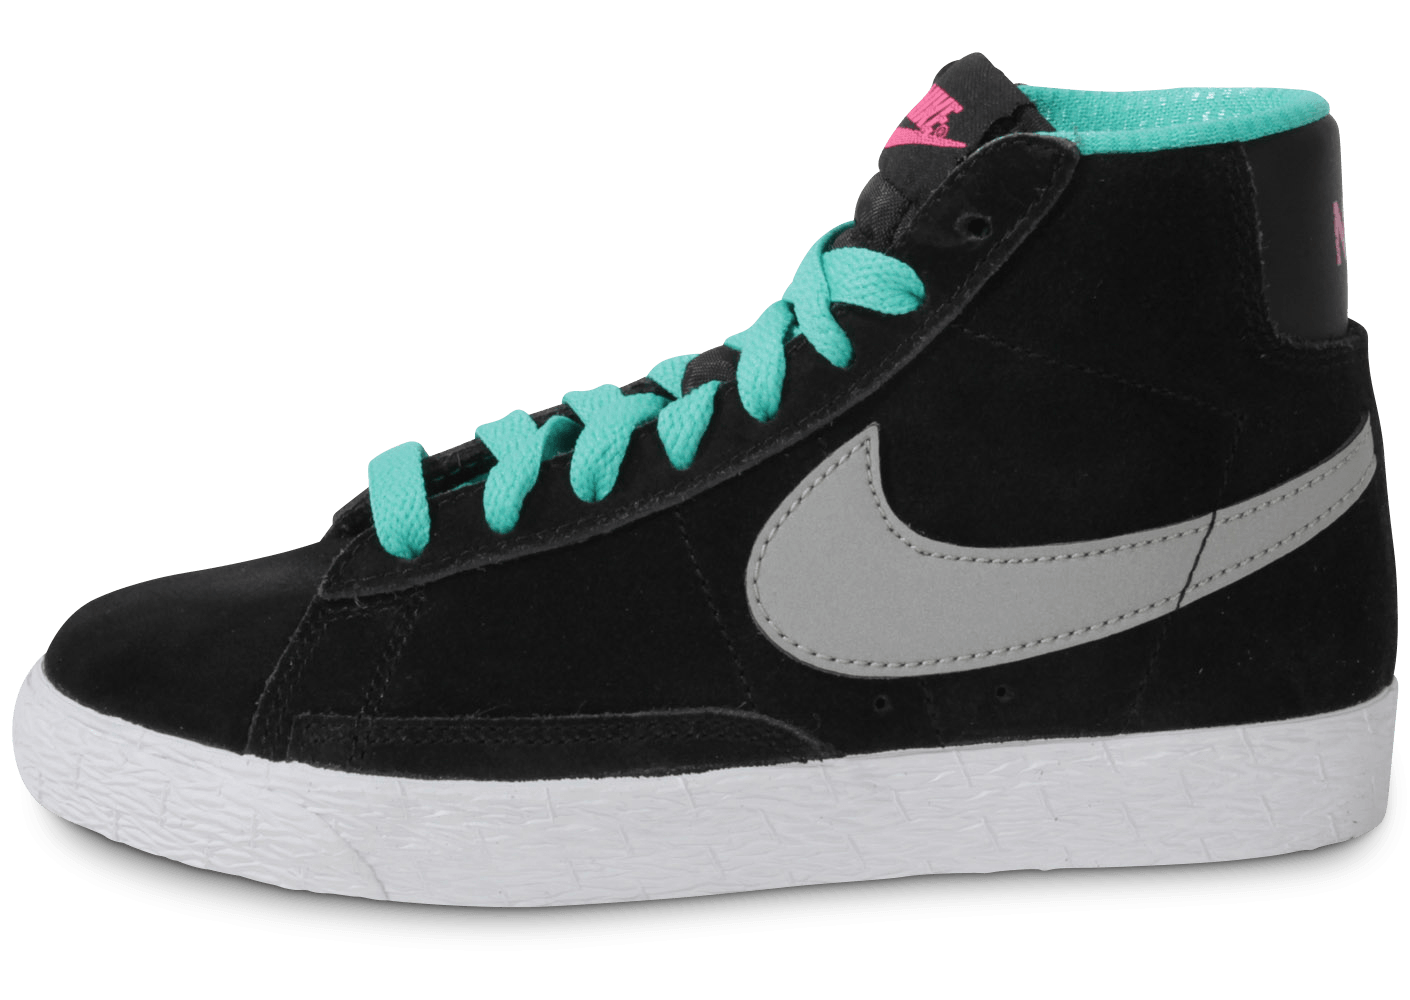 nike blazer noire et grise enfant chaussures chaussures. Black Bedroom Furniture Sets. Home Design Ideas